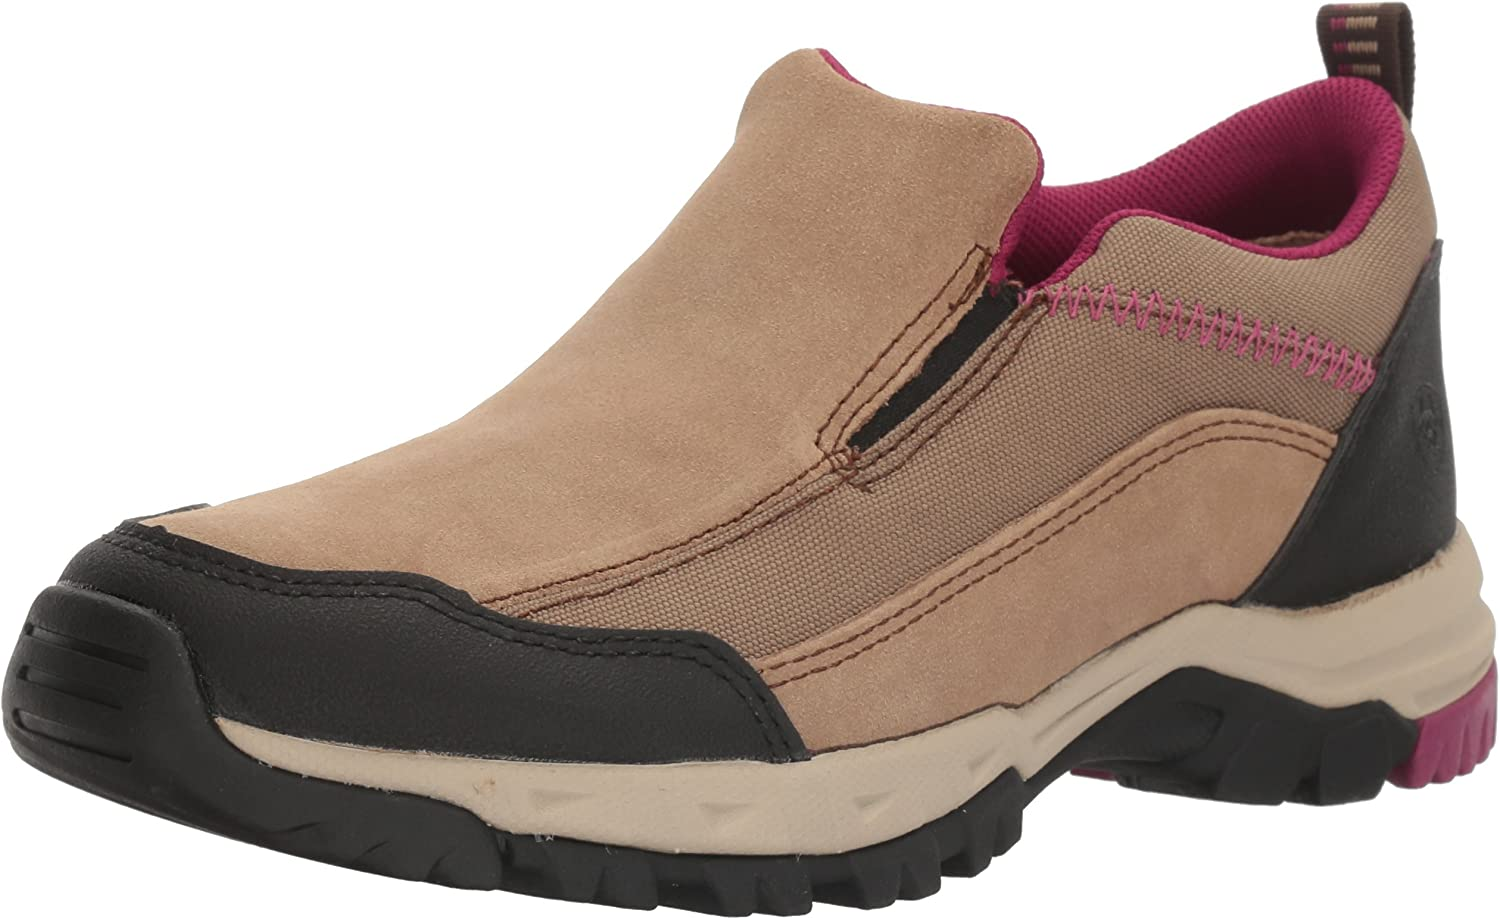 Ariat Wouomo cieloline Slip-on Hire sautope, Tan, 8.5 B US